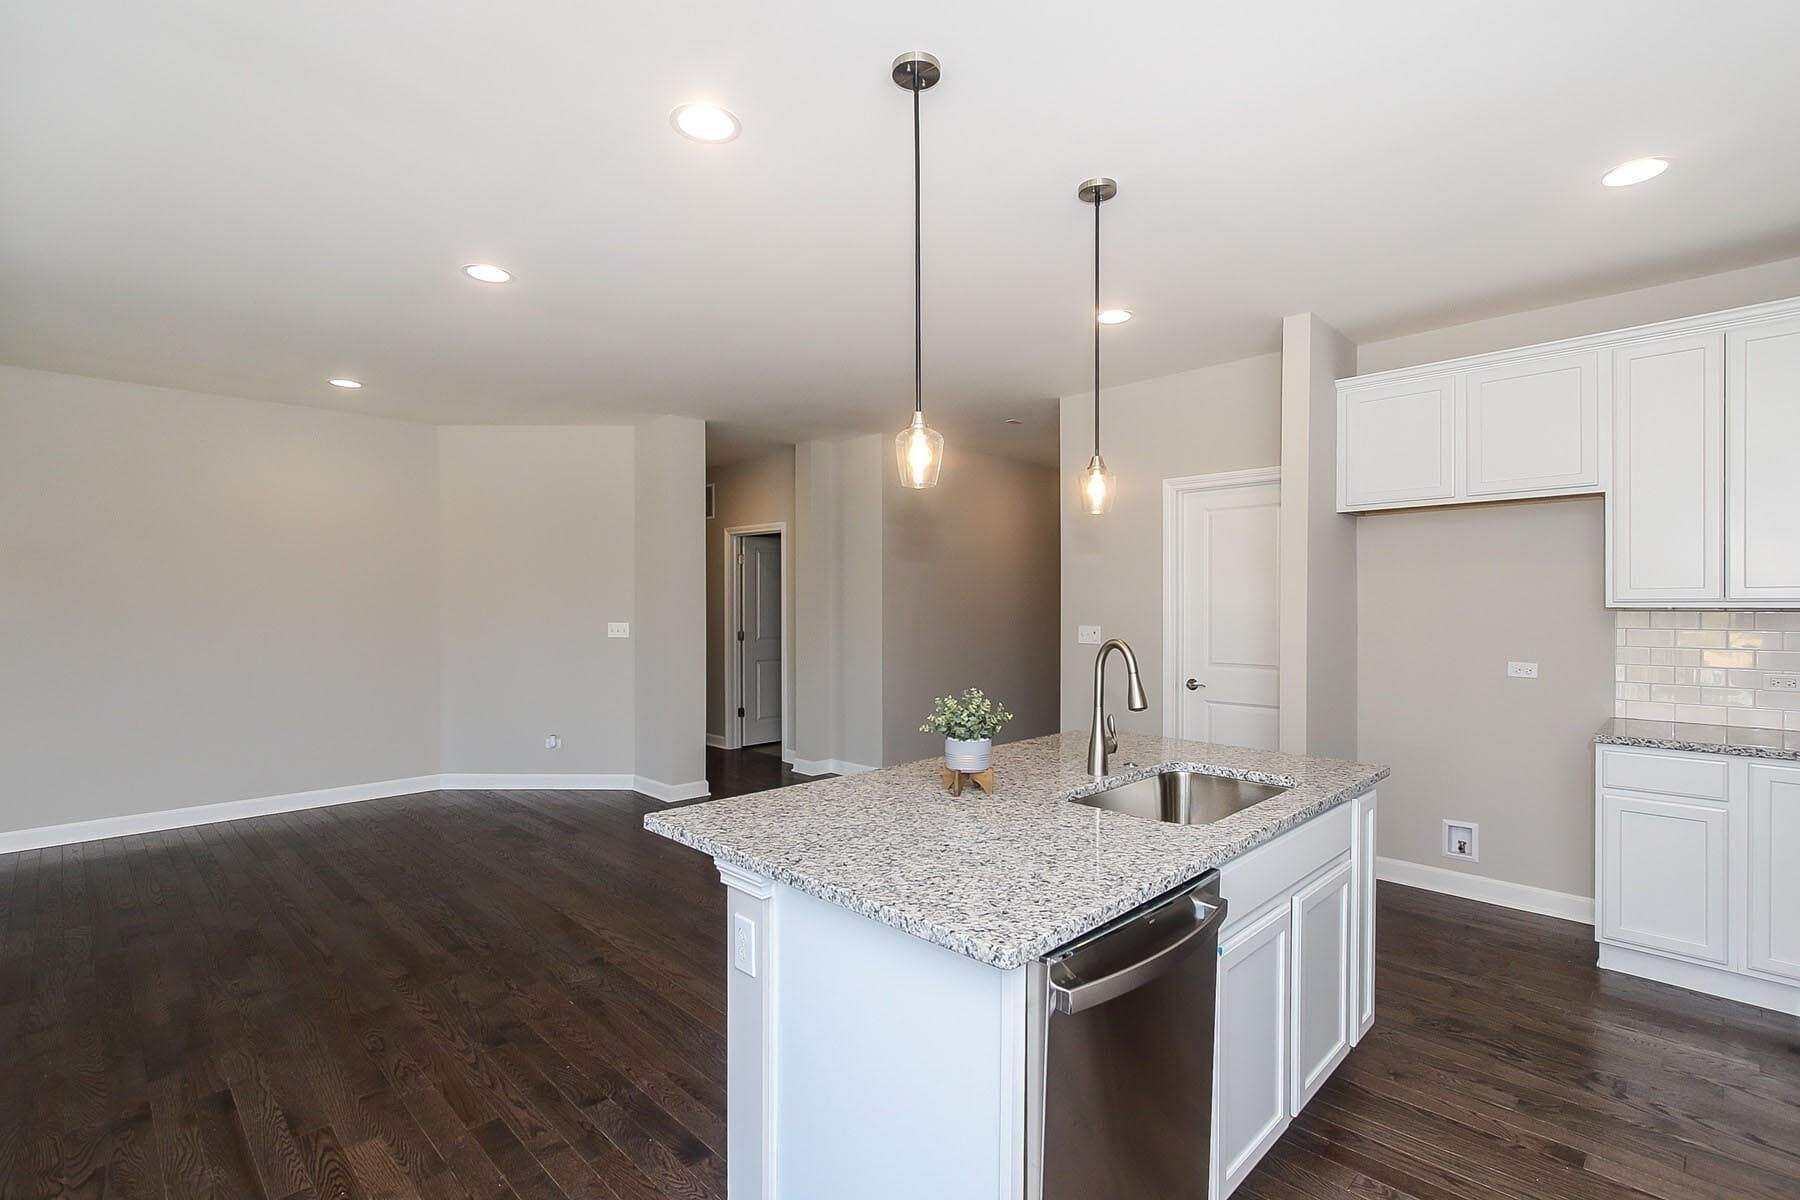 Kitchen featured in the Austin By M/I Homes in Chicago, IL